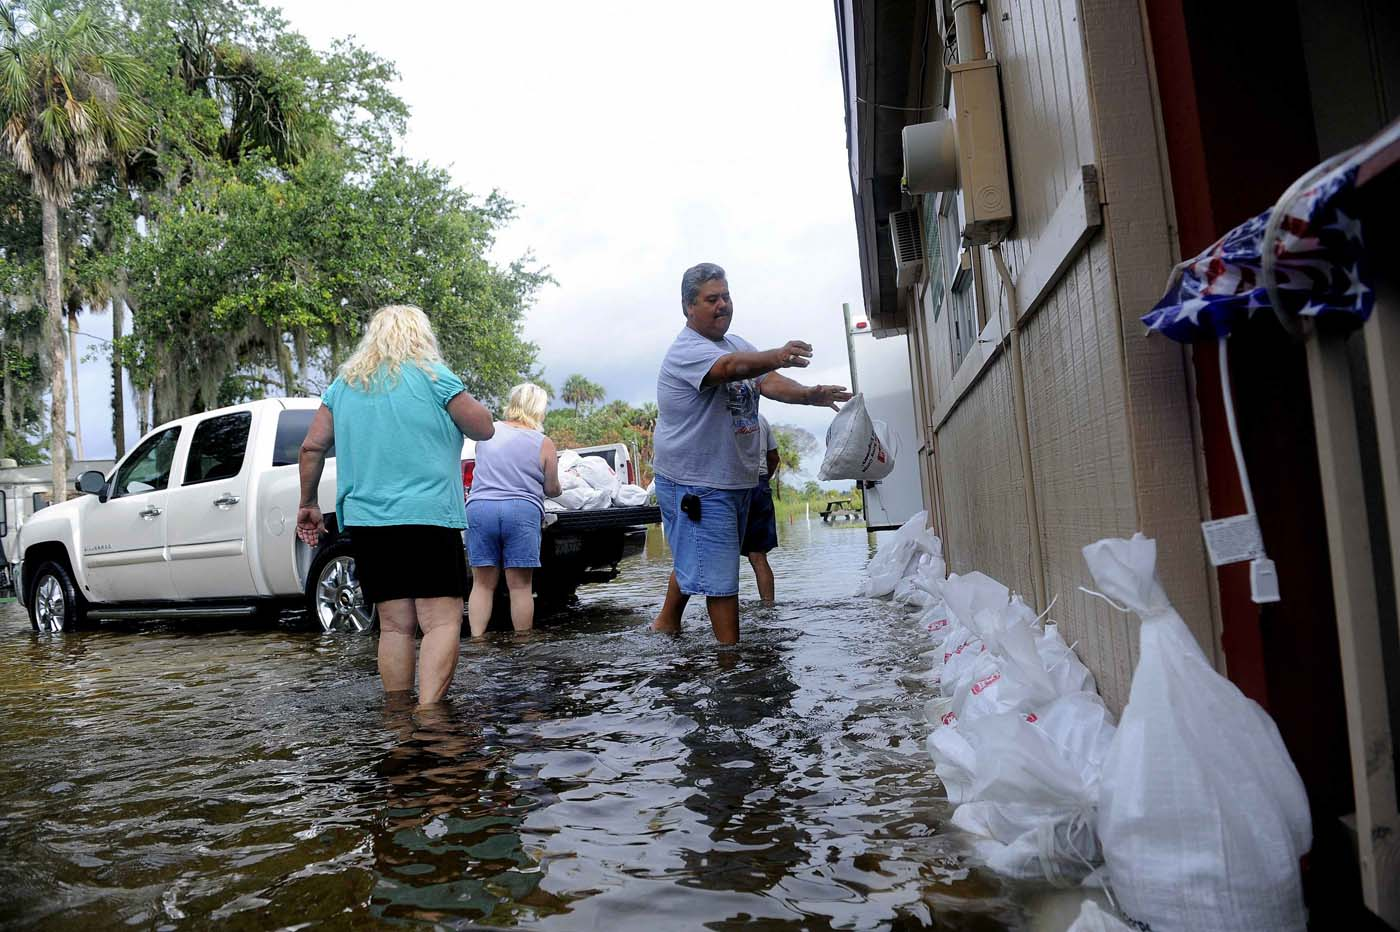 Mike Shoemaker (R), manager of the Nature's Resort RV Park, joins residents as they unload sandbags together to protect the park's bar and hold back rising floodwaters associated with Tropical Storm Debby in Crystal River, Florida, June 26, 2012. (Brian Blanco/Reuters)